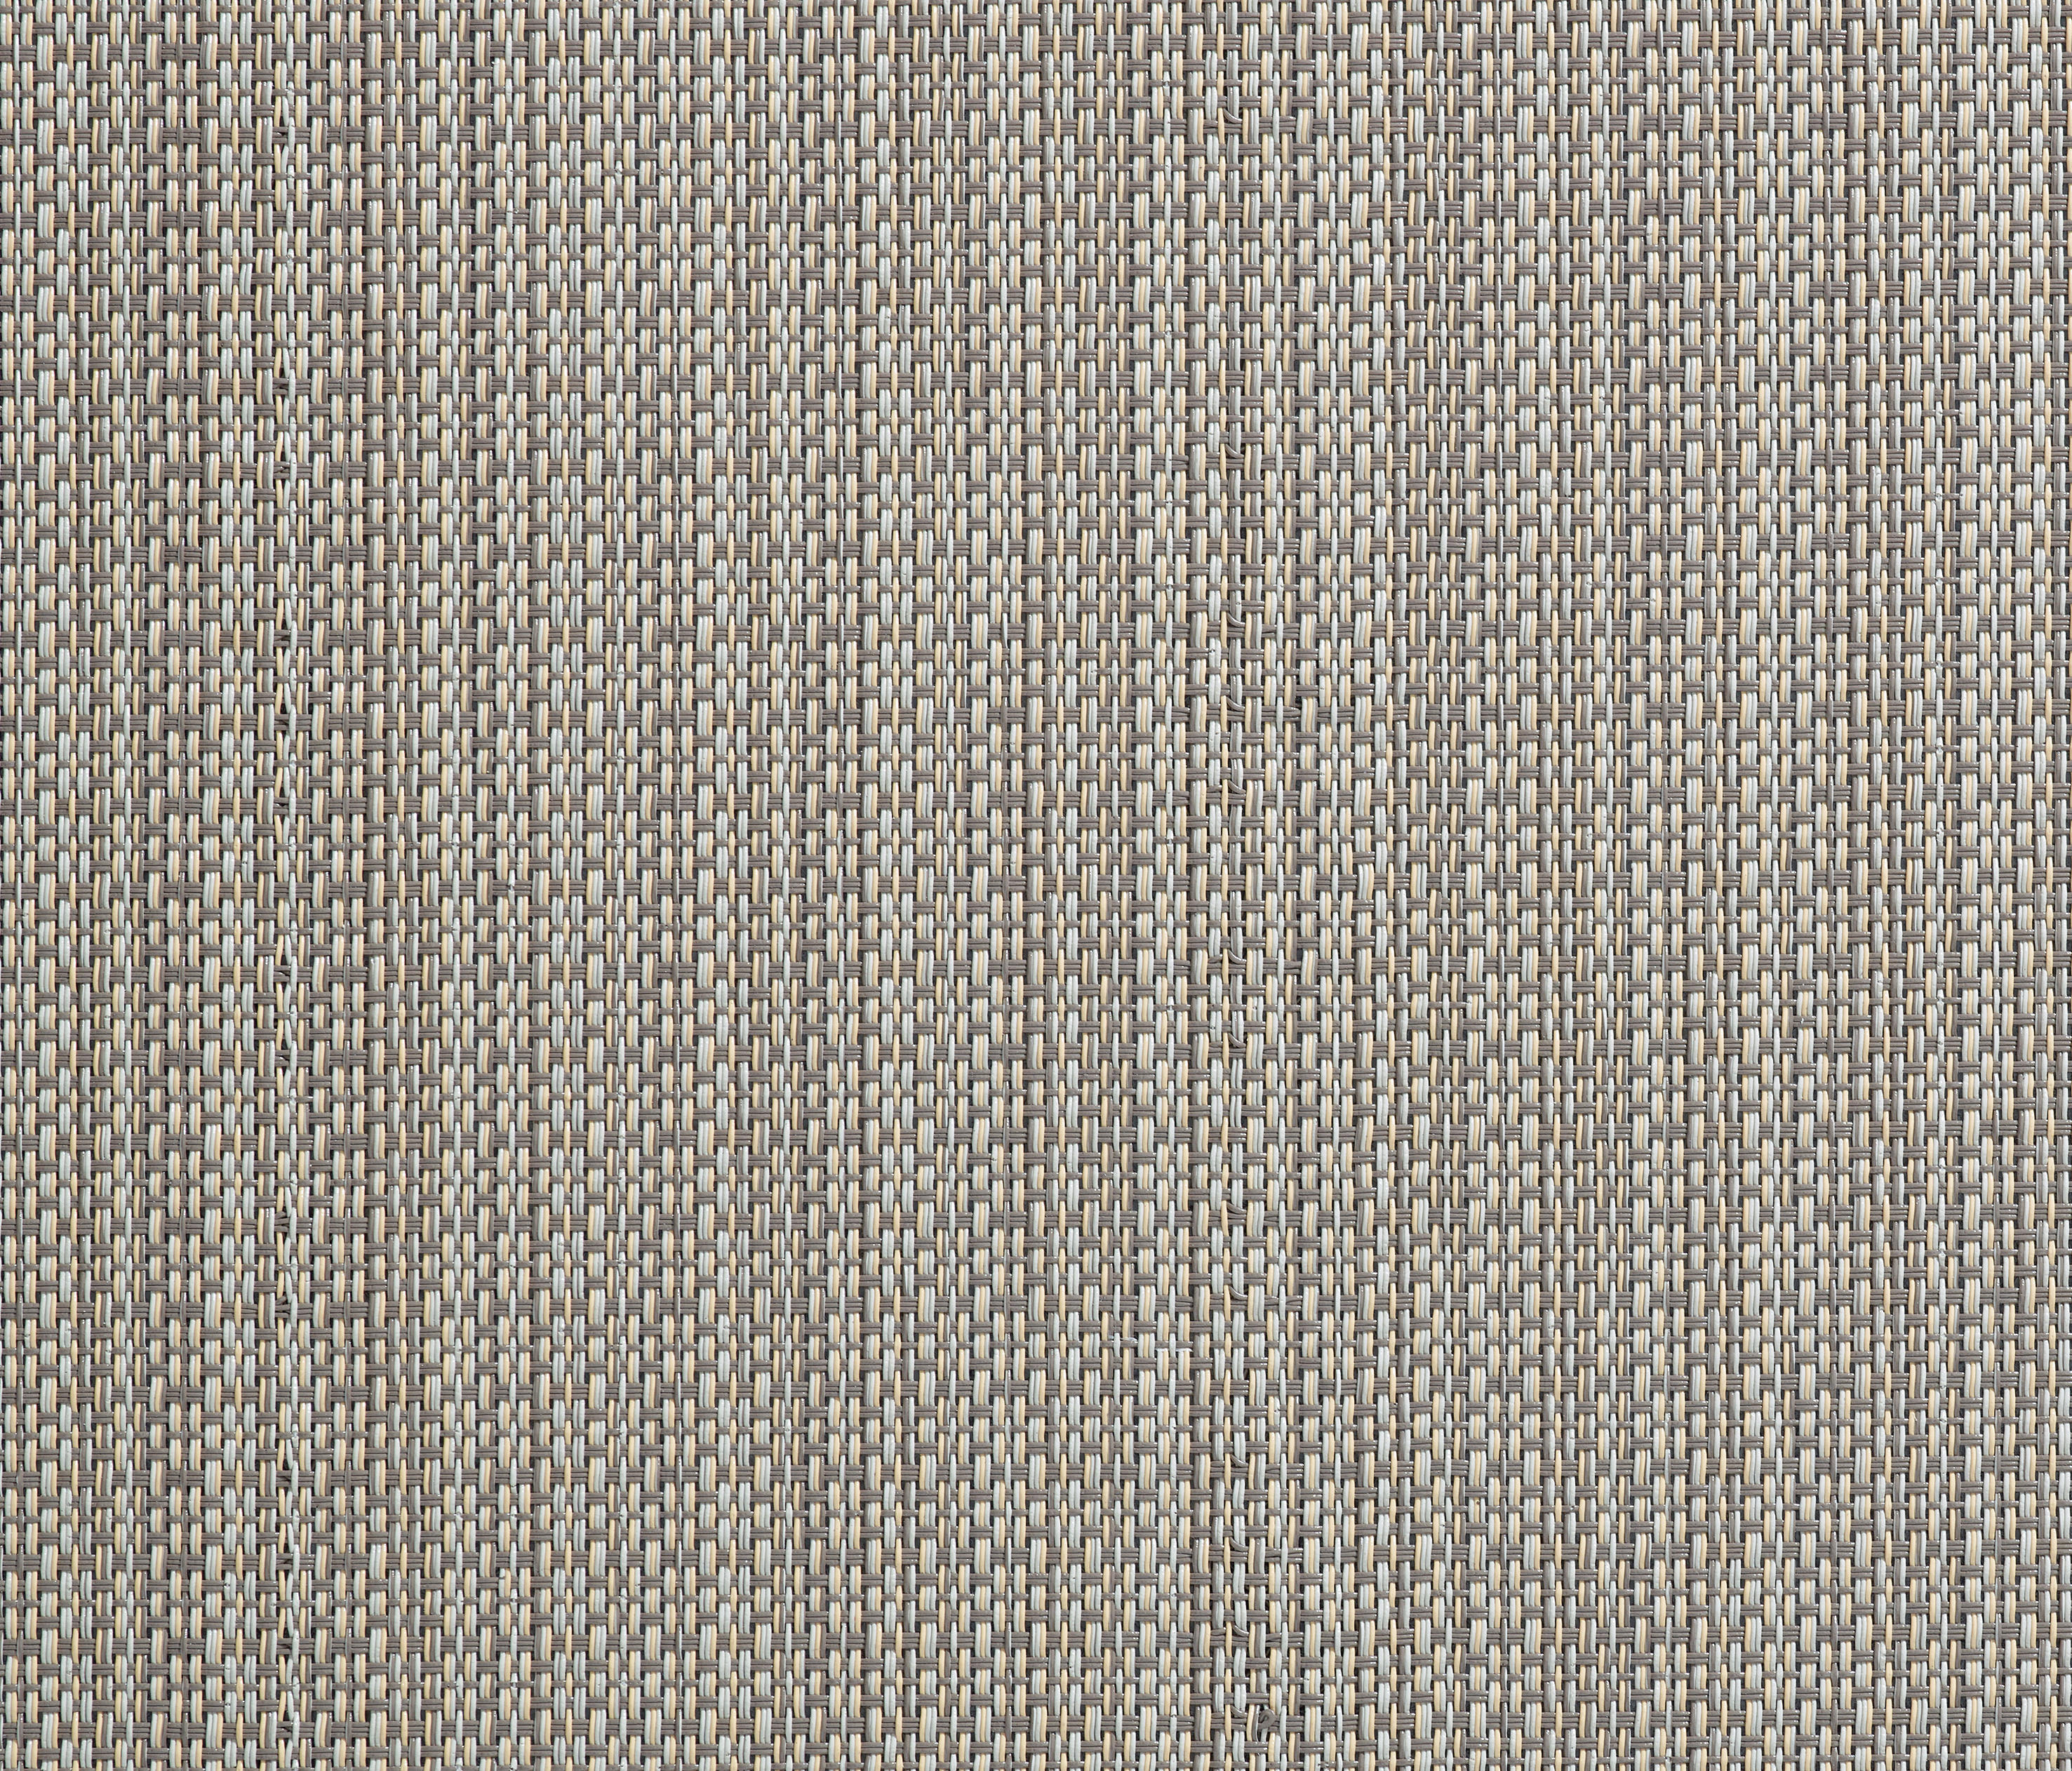 Ntgrate 174 Klic Tatami Papyrus Synthetic Panels From